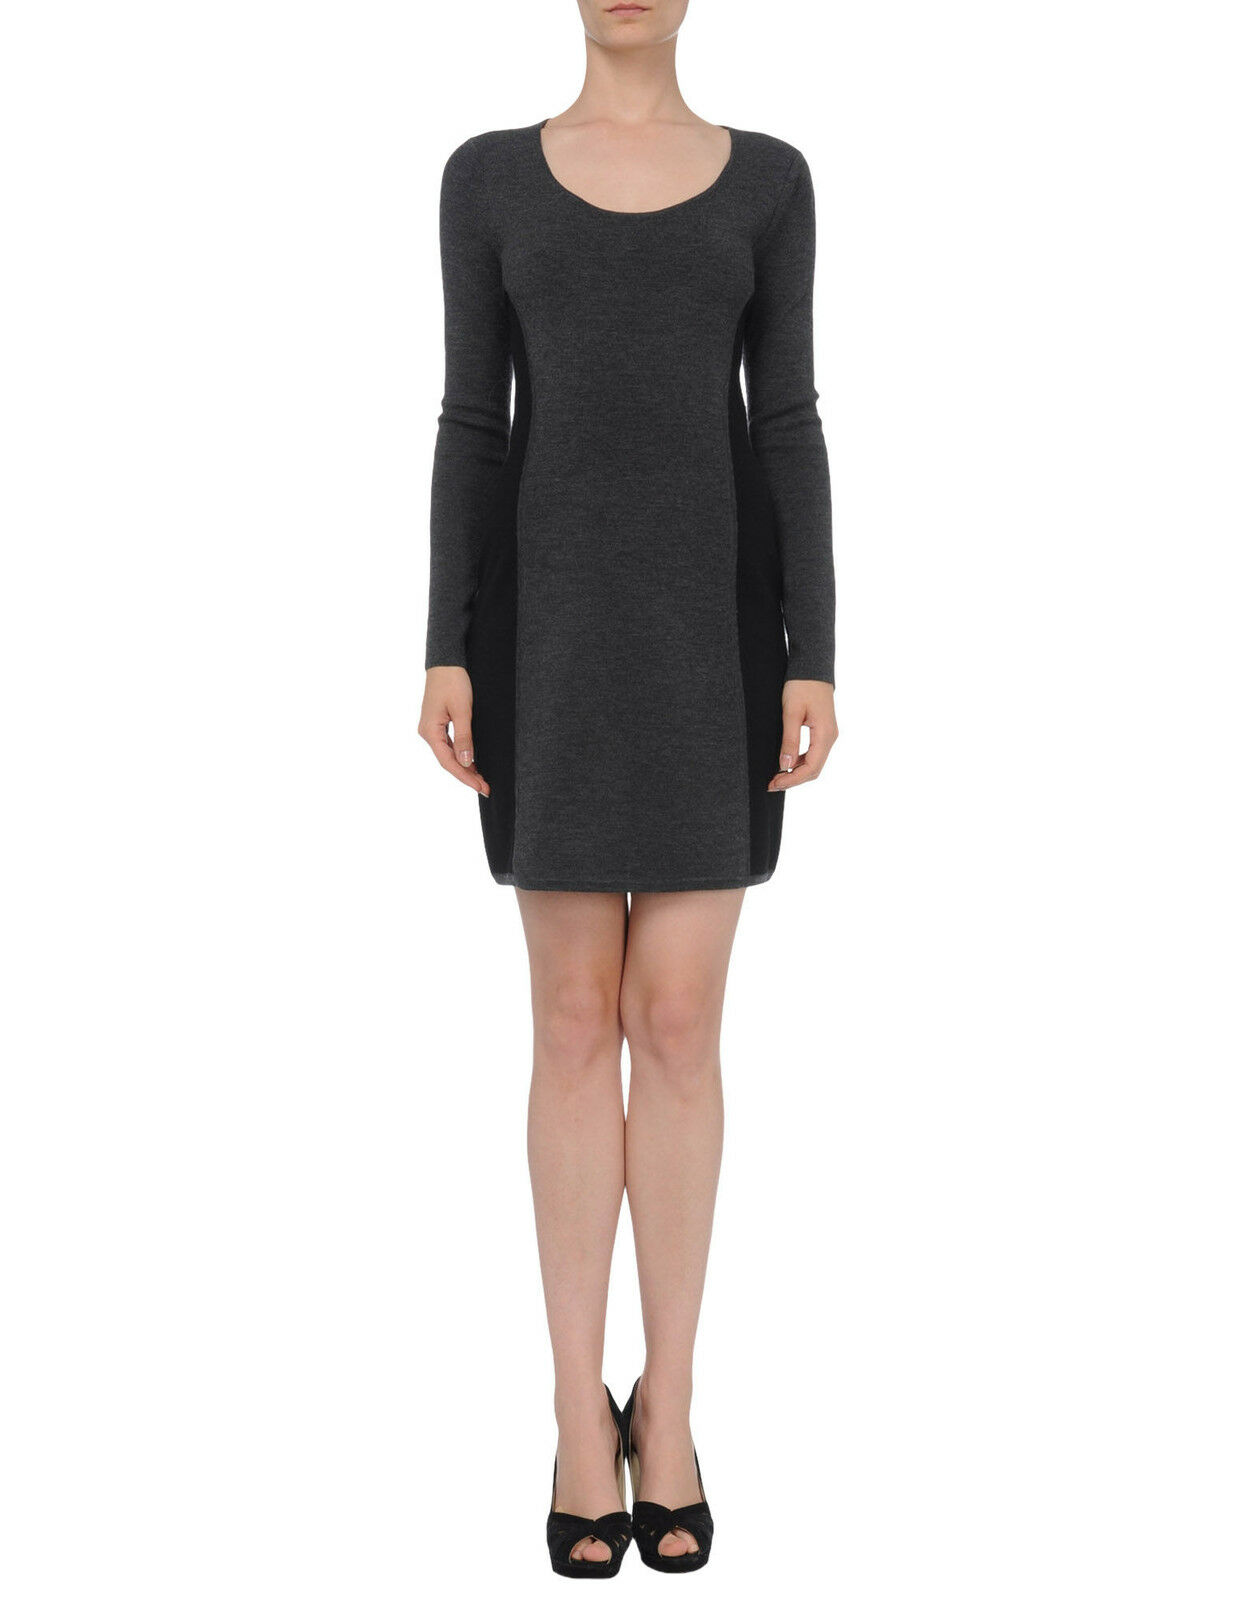 THEORY WOOL DRESS US 4. NWT   RRP